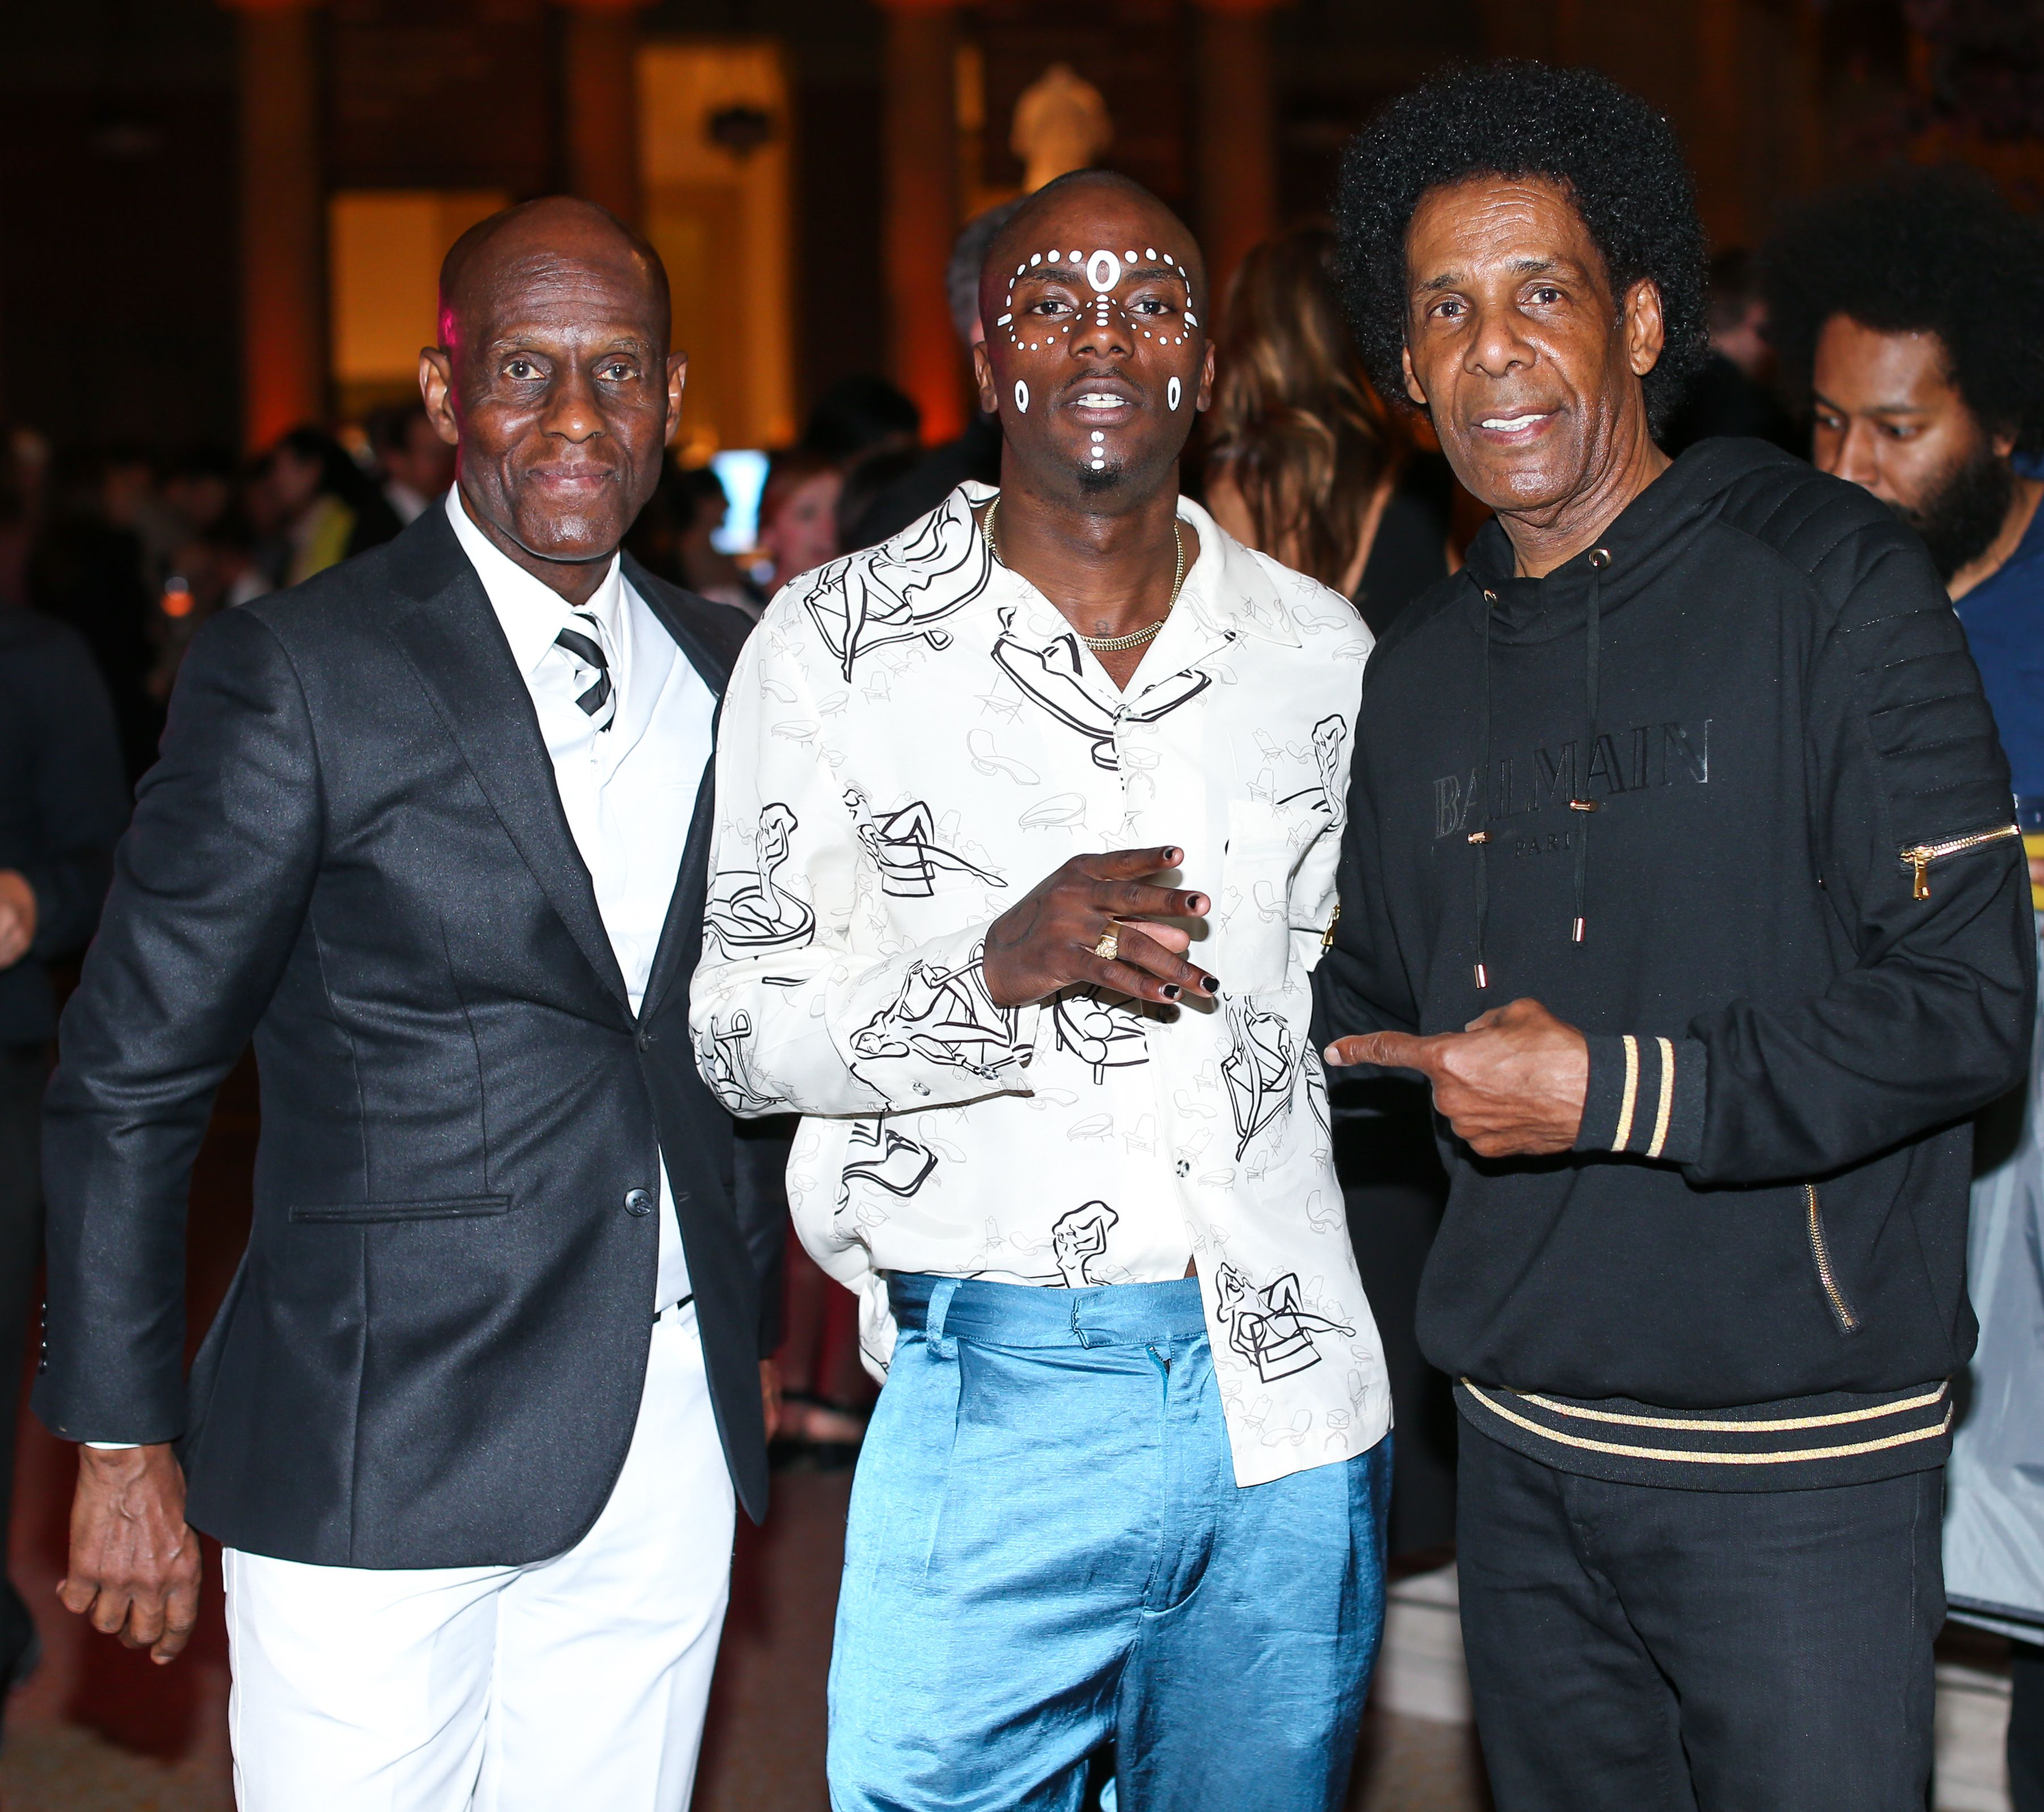 Dapper Dan, Young Paris, Pee Wee KirklandGoogle 'We Wear Culture' at The Met, New York, USA - 08 Jun 2017